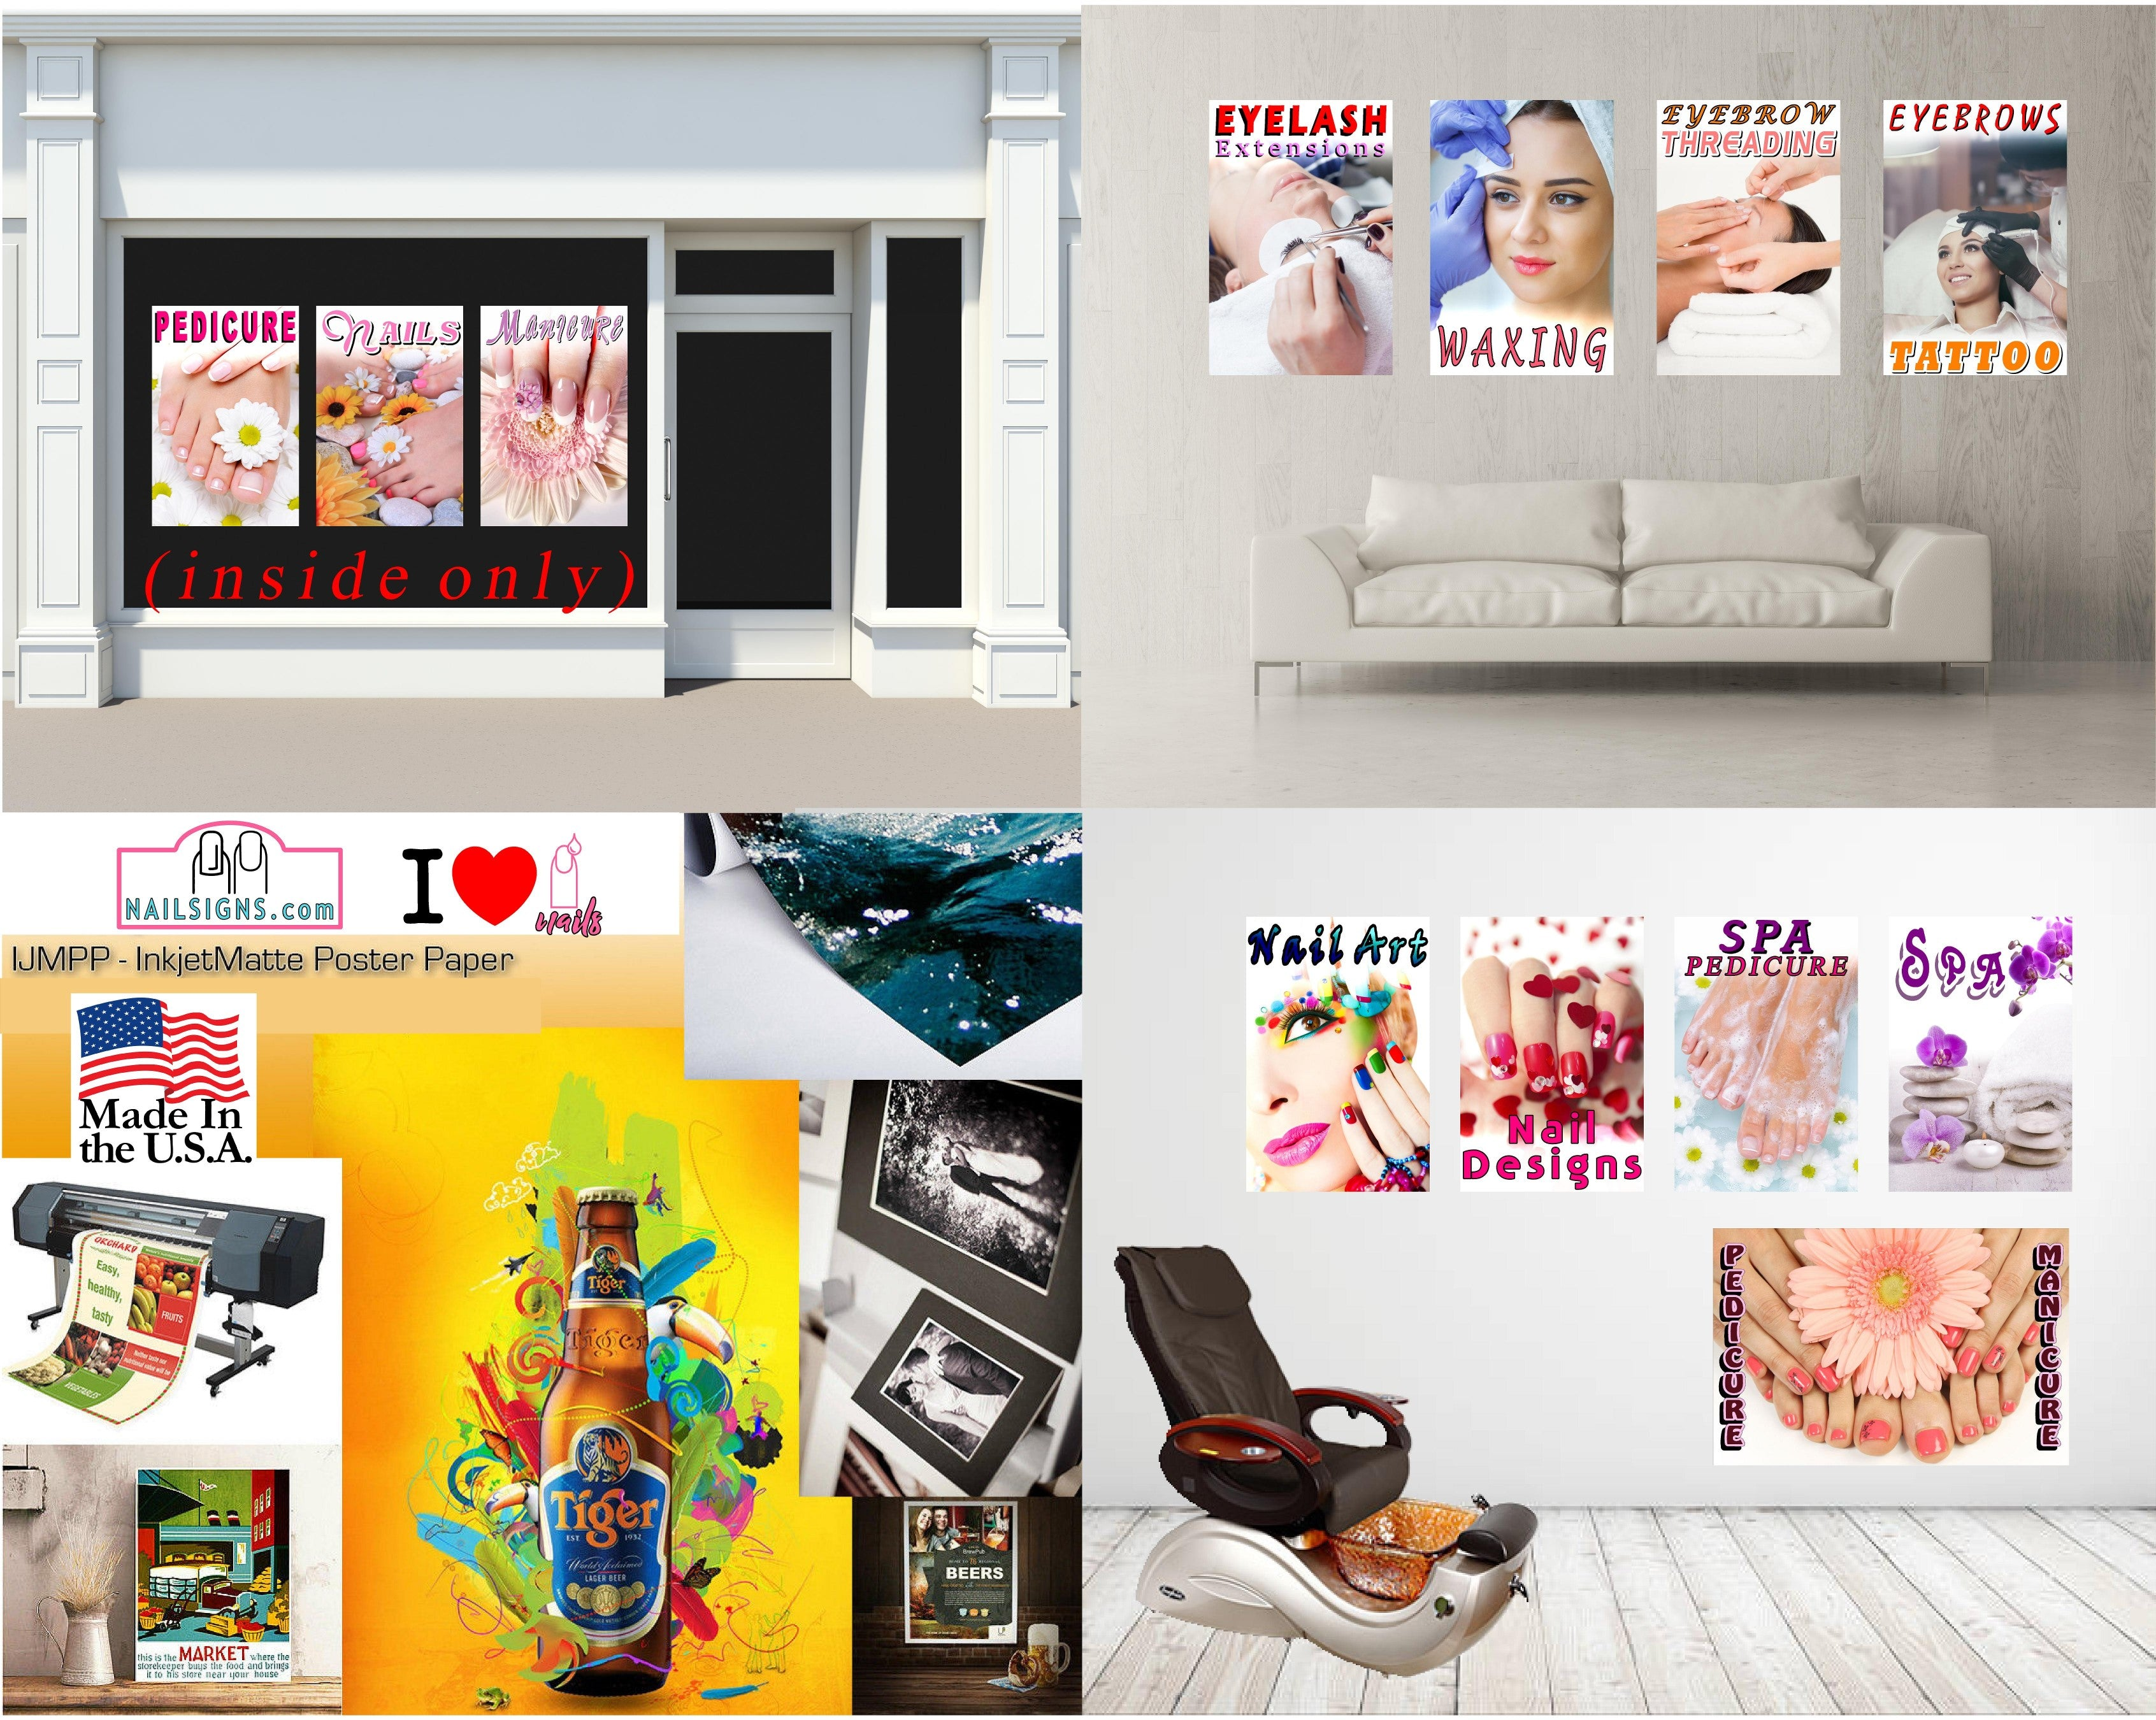 Nails 13 Photo-Realistic Paper Poster Premium Matte Interior Inside Sign Advertising Marketing Wall Window Non-Laminated Horizontal